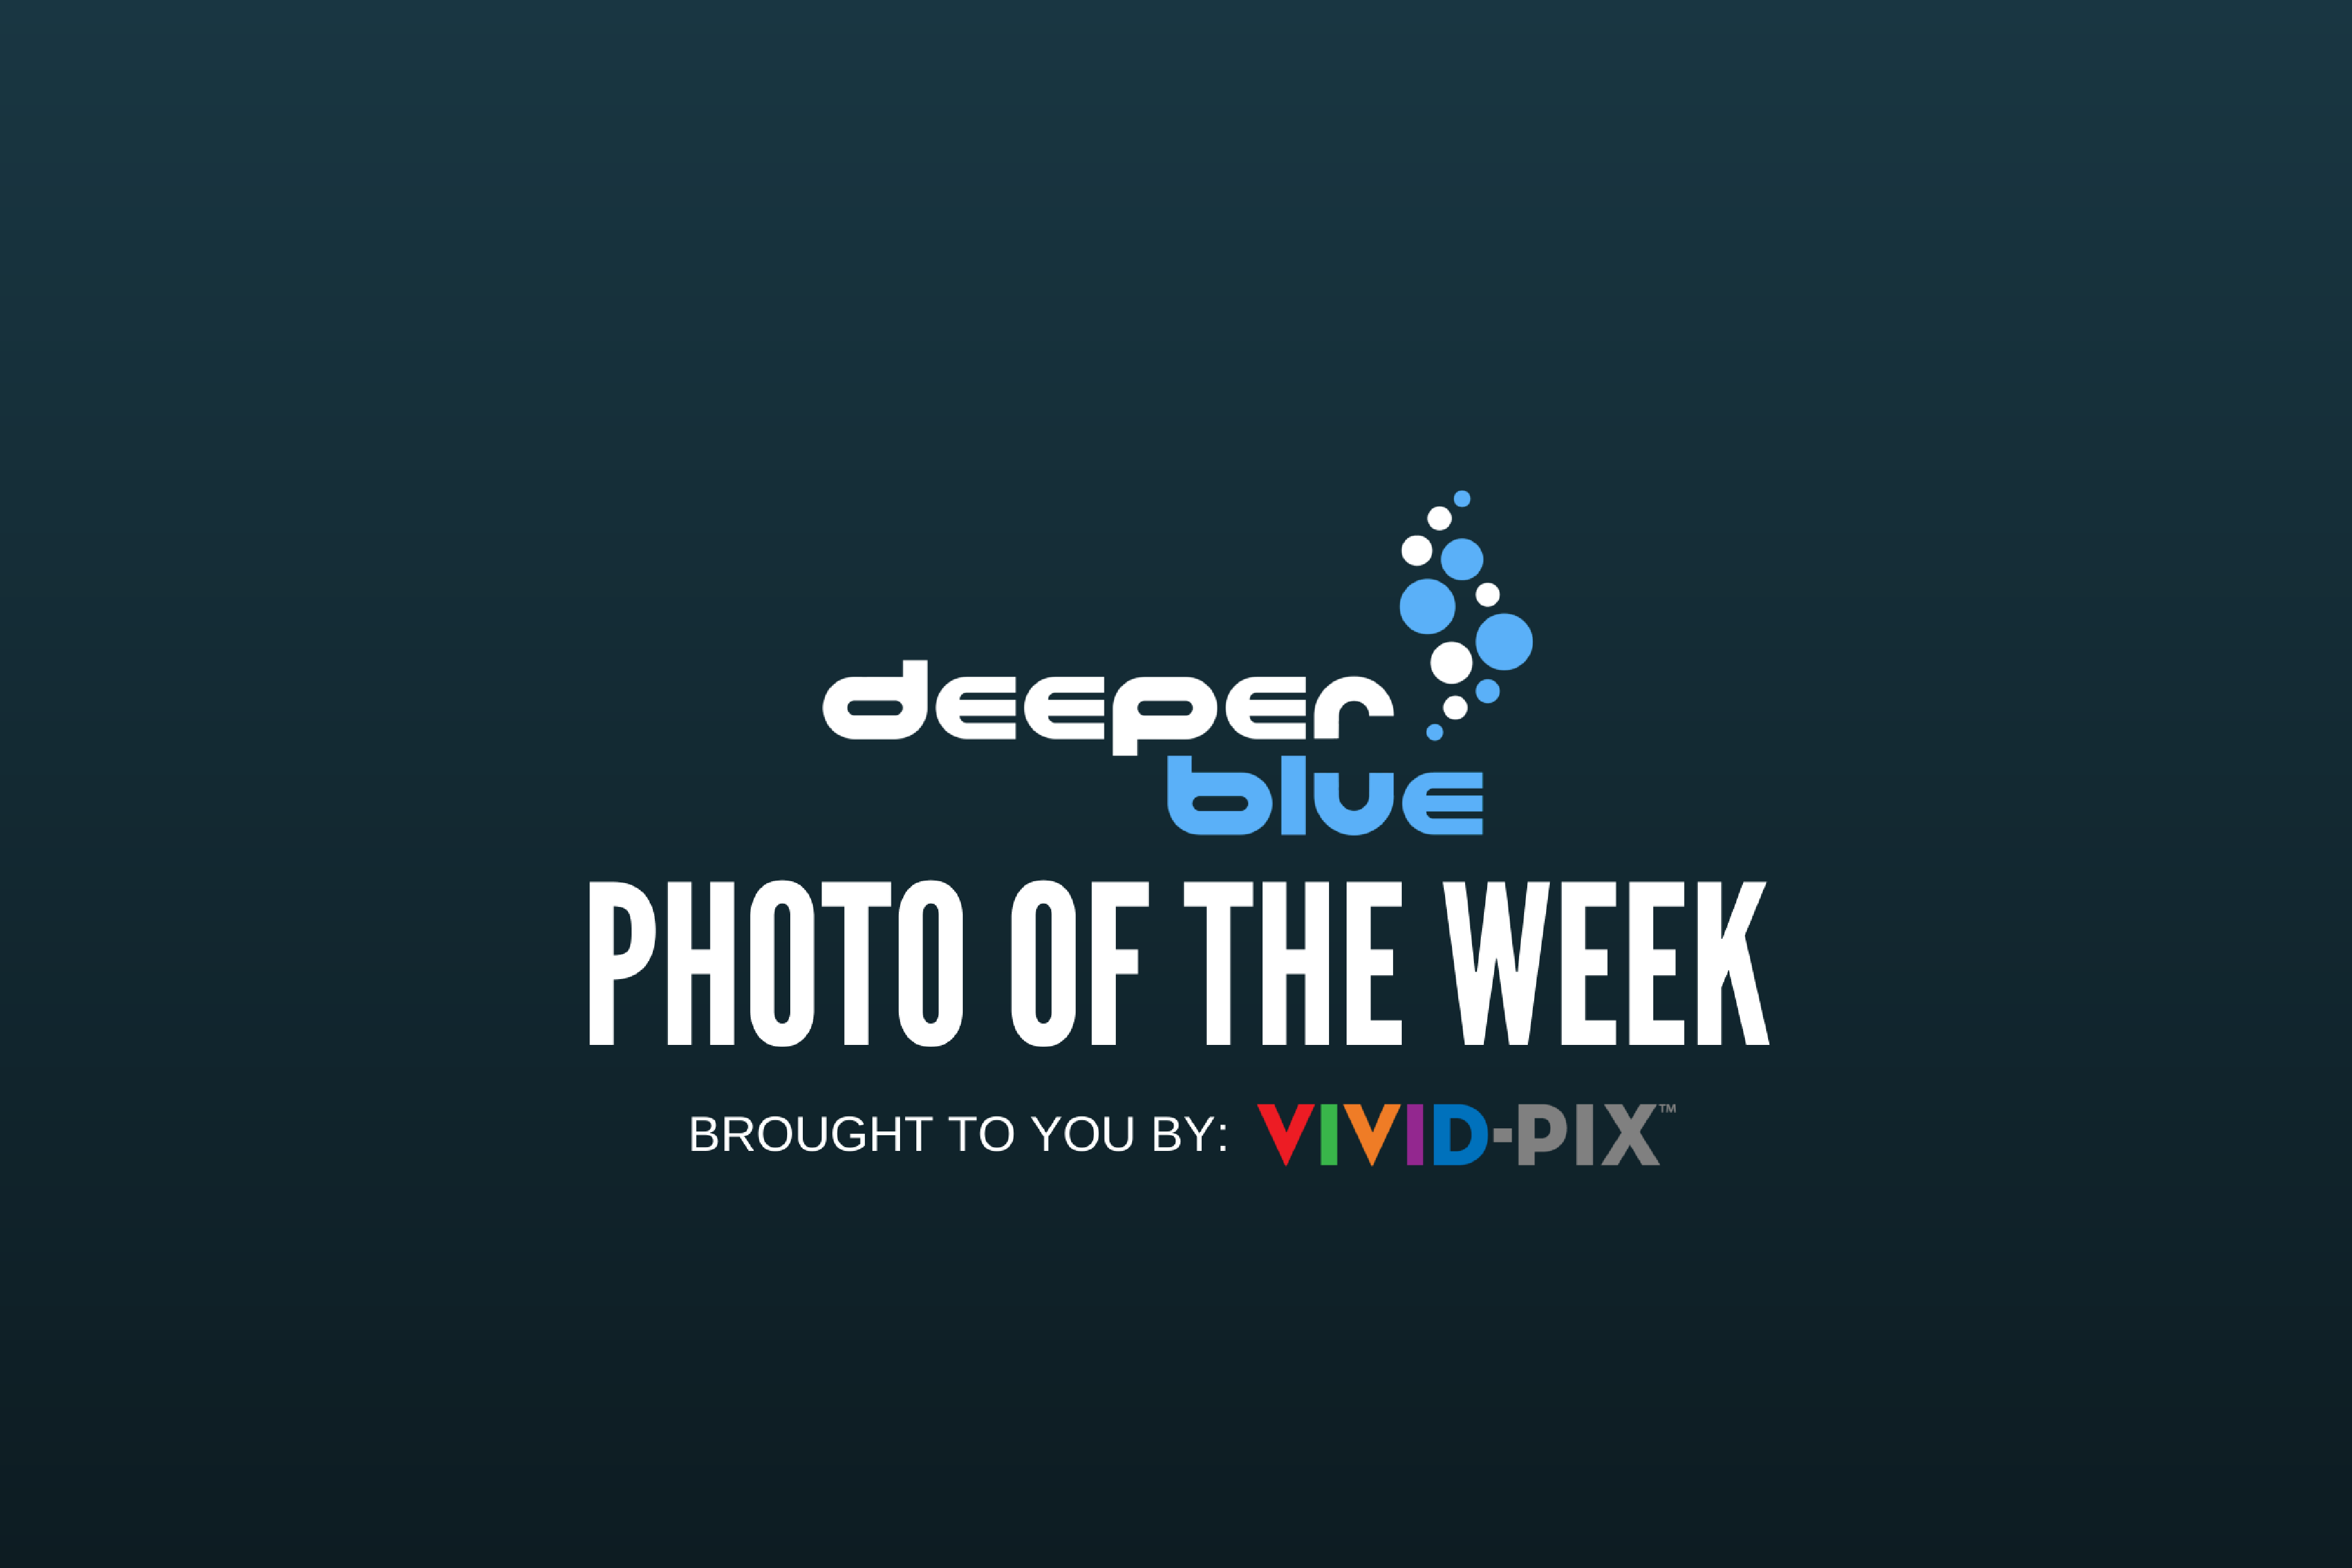 DeeperBlue.com - Photo of the Week - Brought to you by Vivid Pix